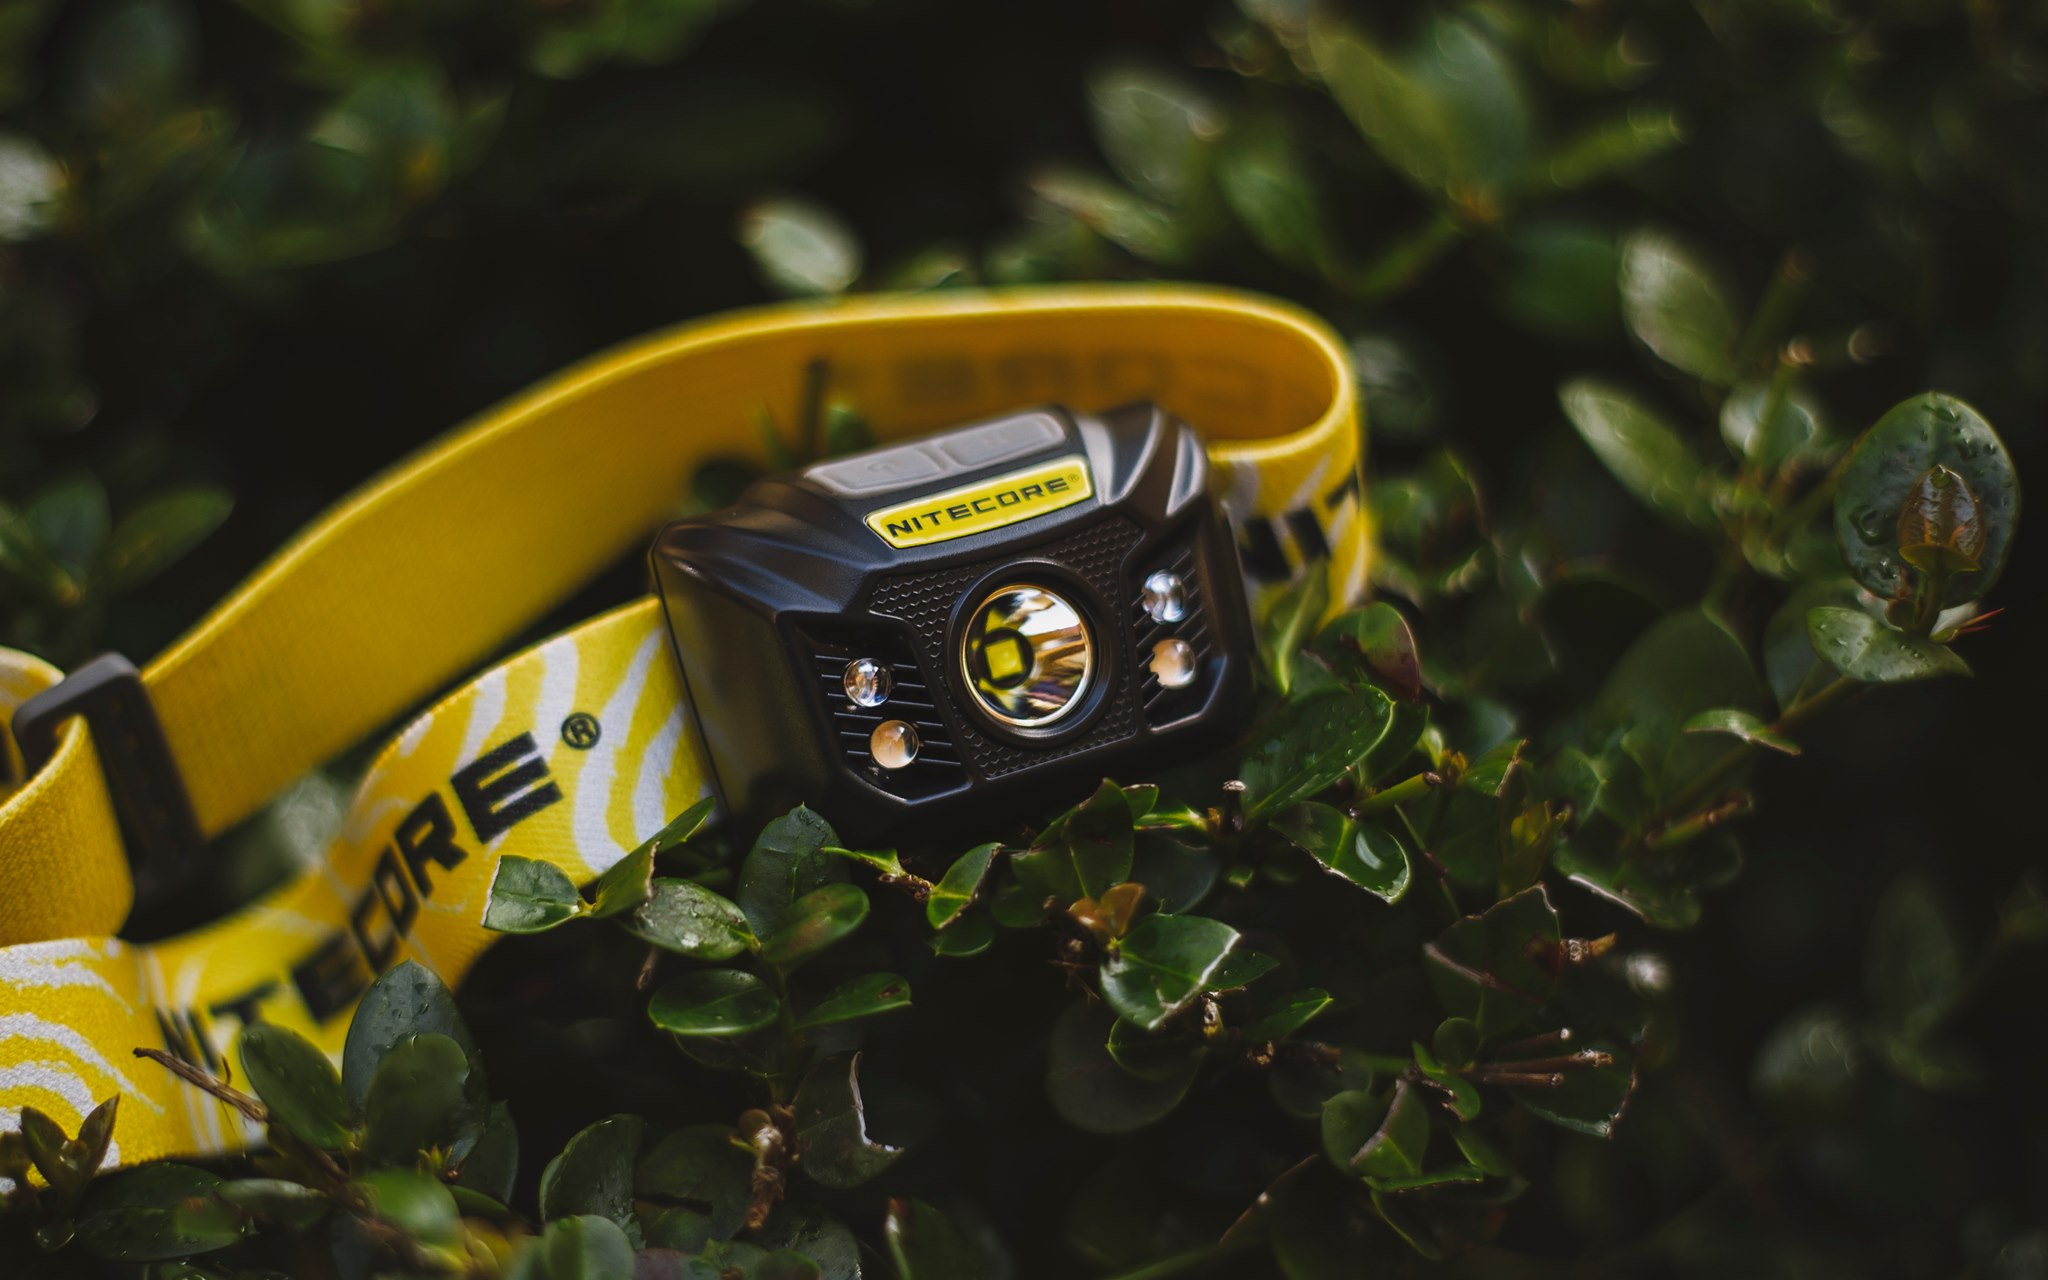 A light weight headlamp with long run time, can take your outdoor activities to the next level. The NU32 headlamp has extreme compact and lightweight body with a weight of 99.5g (3.51oz), and max runtime up to 330 hours.